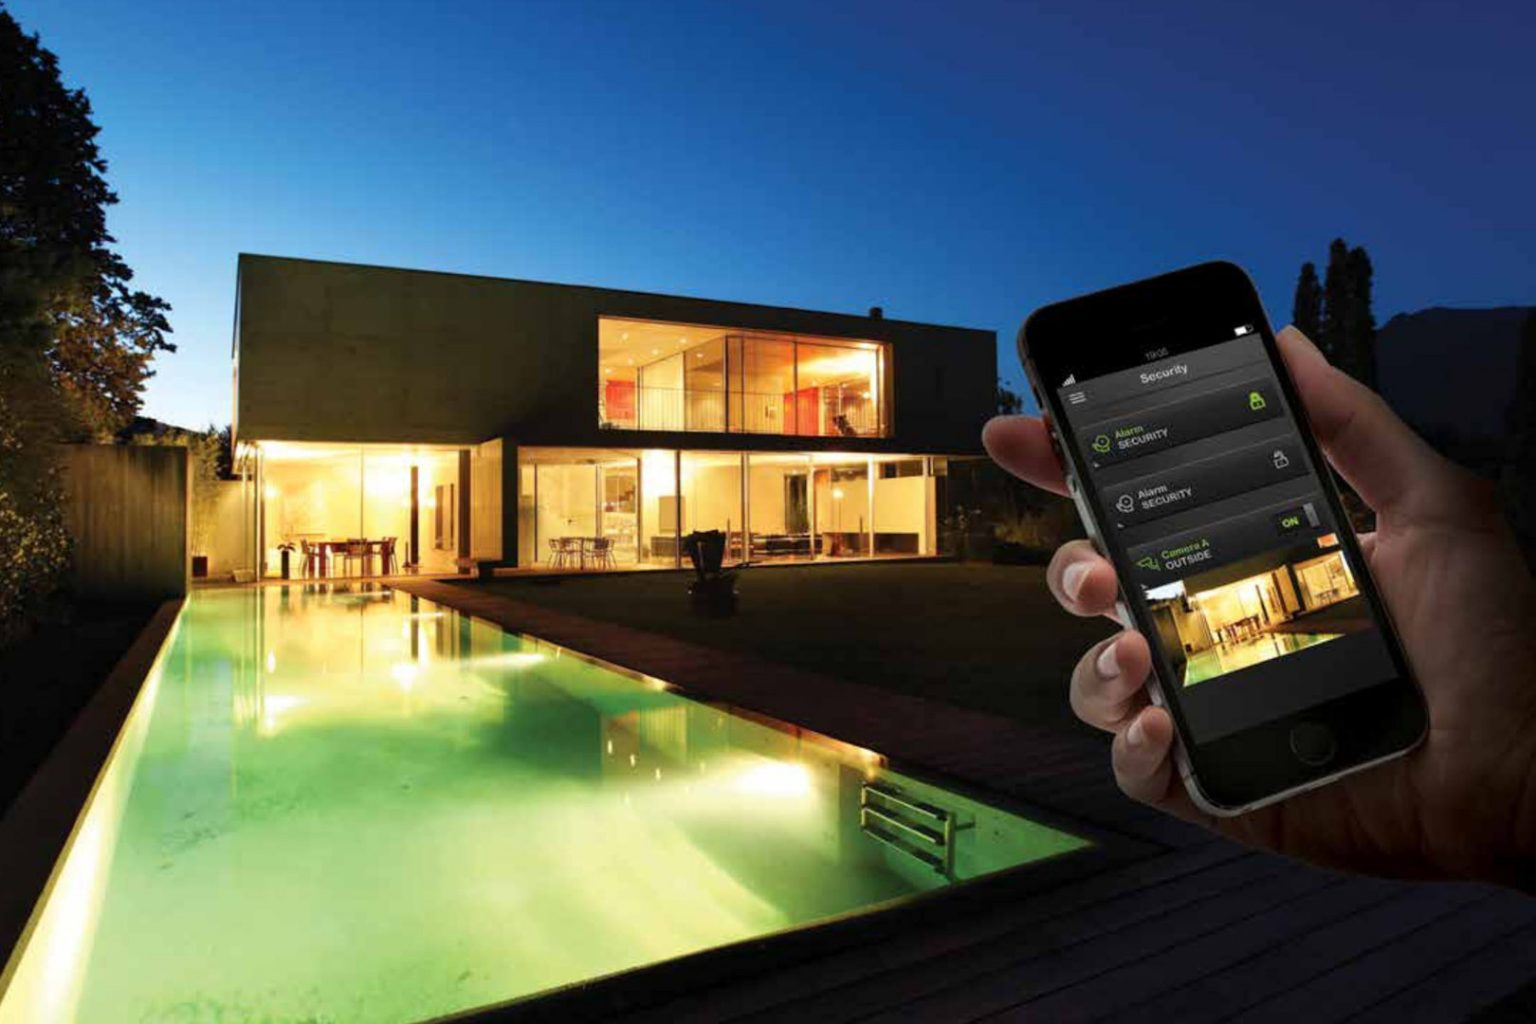 controlling clipsal cbus lighting with an iphone wiser app